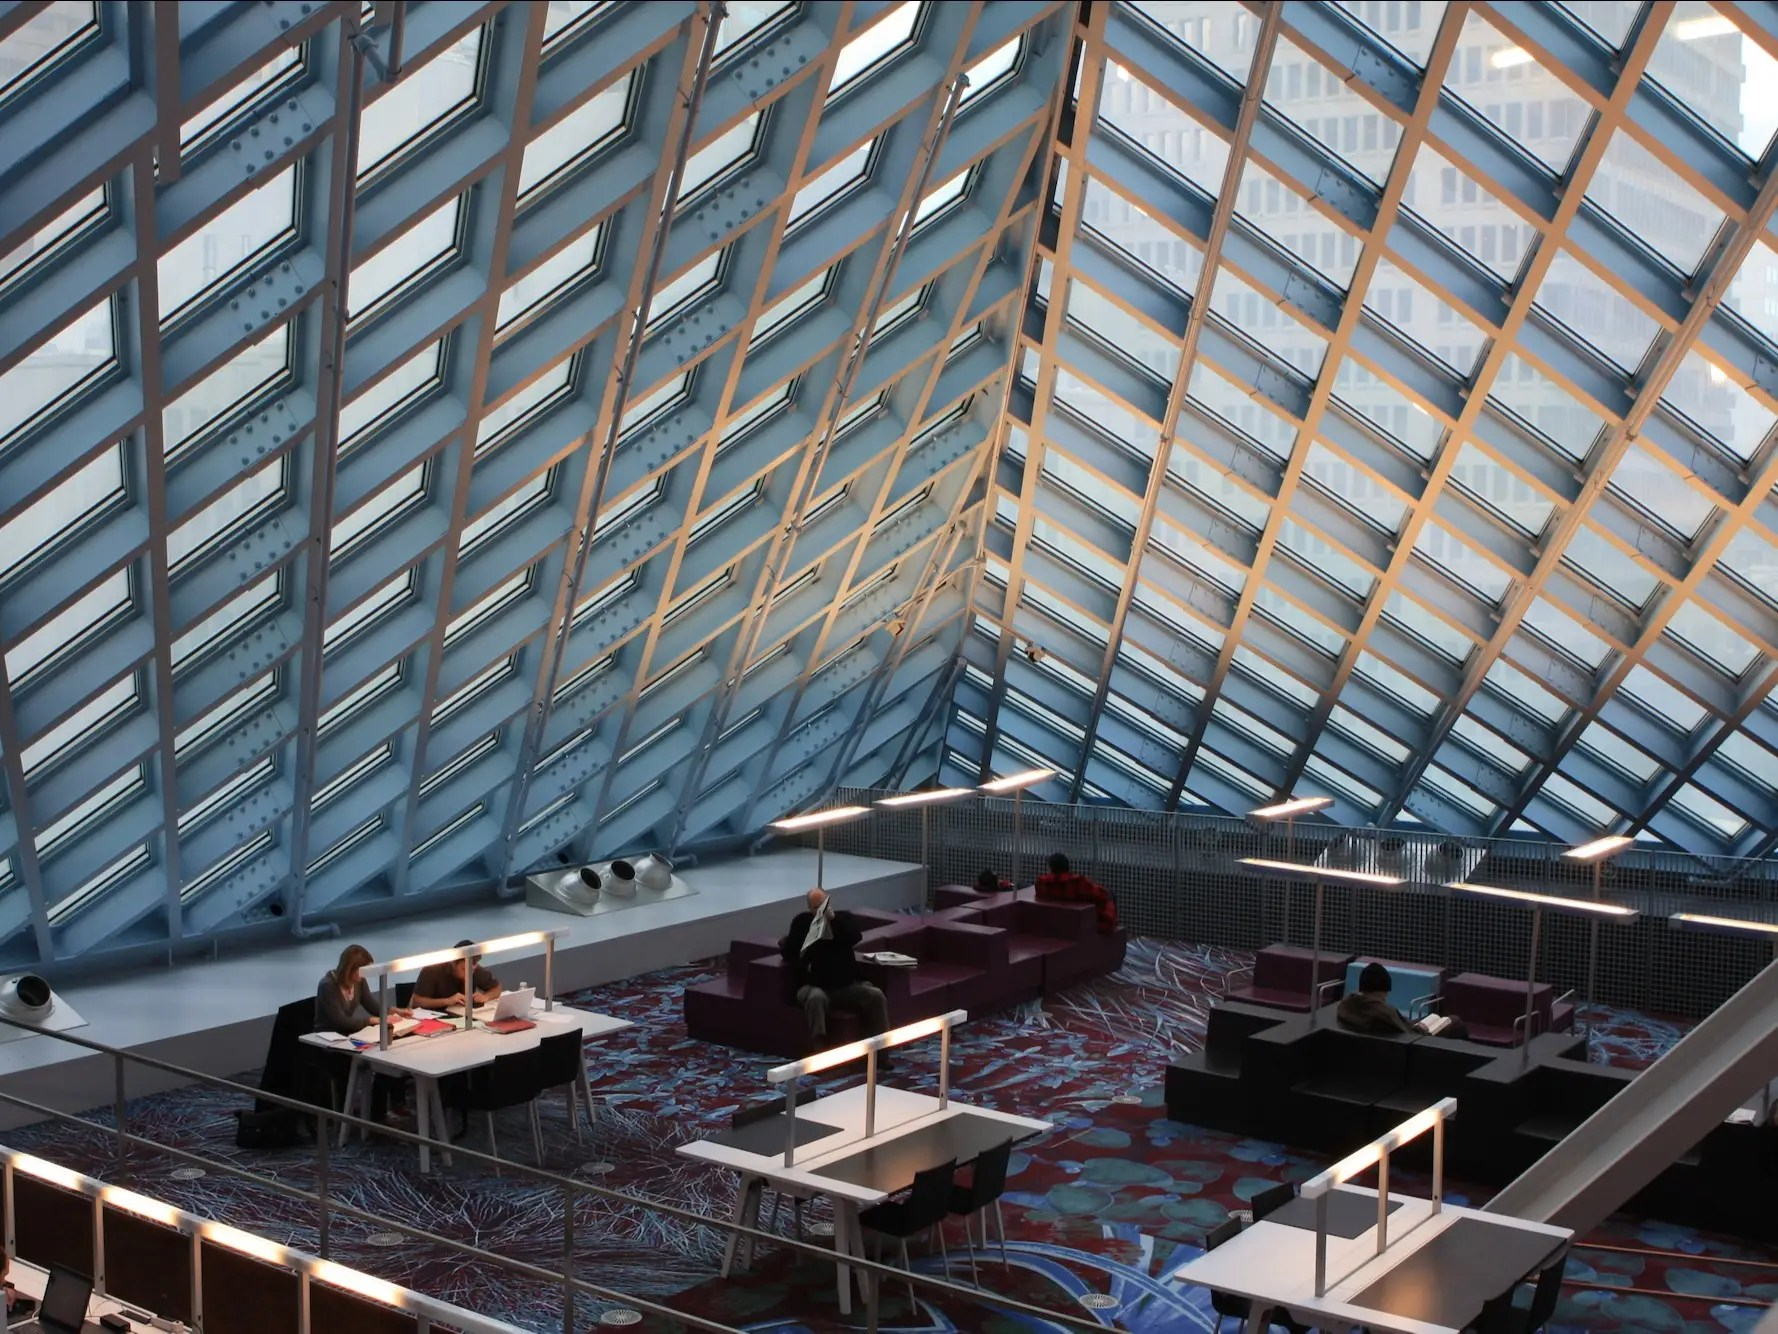 The Seattle Central Library in Seattle, Washington, has 11 stories composed of steel and glass, allowing for plenty of reading and studying room. The central library is a branch of the Seattle Public Library.